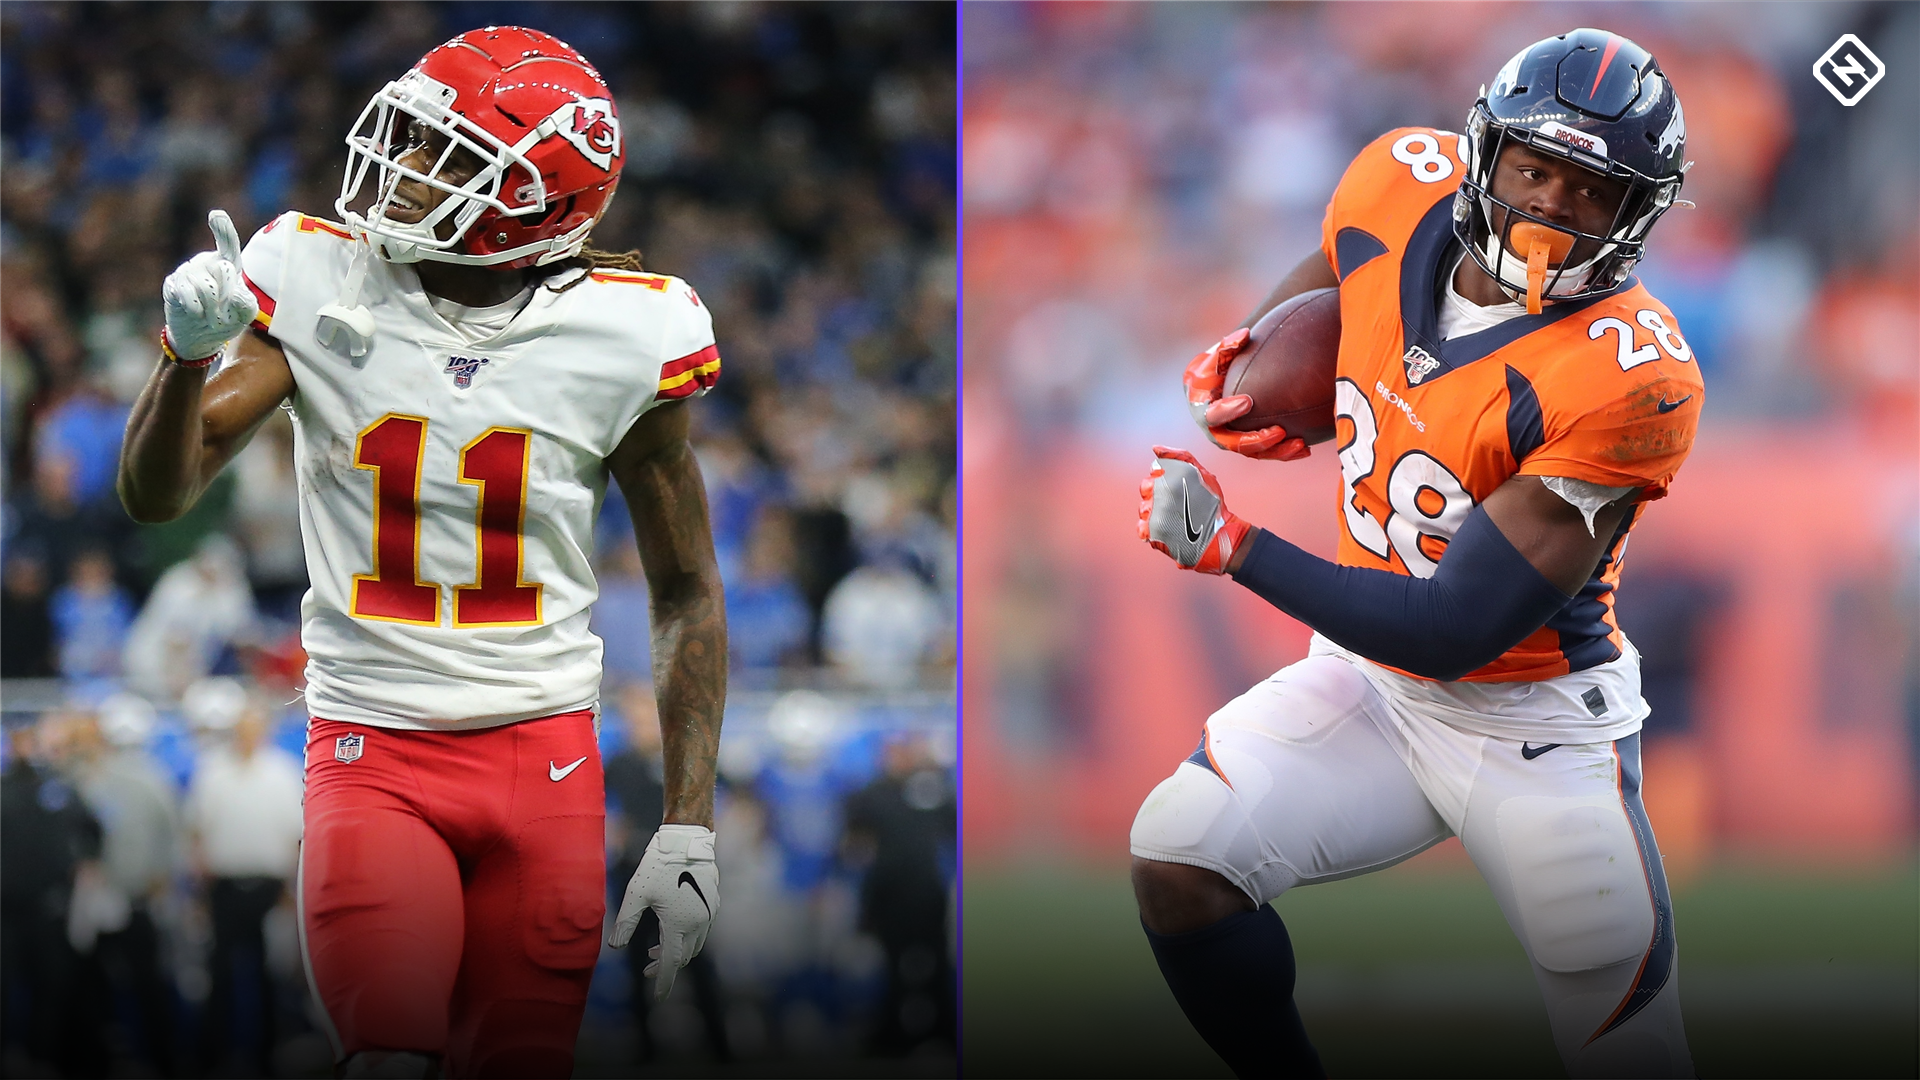 Chiefs vs. Broncos: Who to start/sit in fantasy for 'Thursday Night Football'